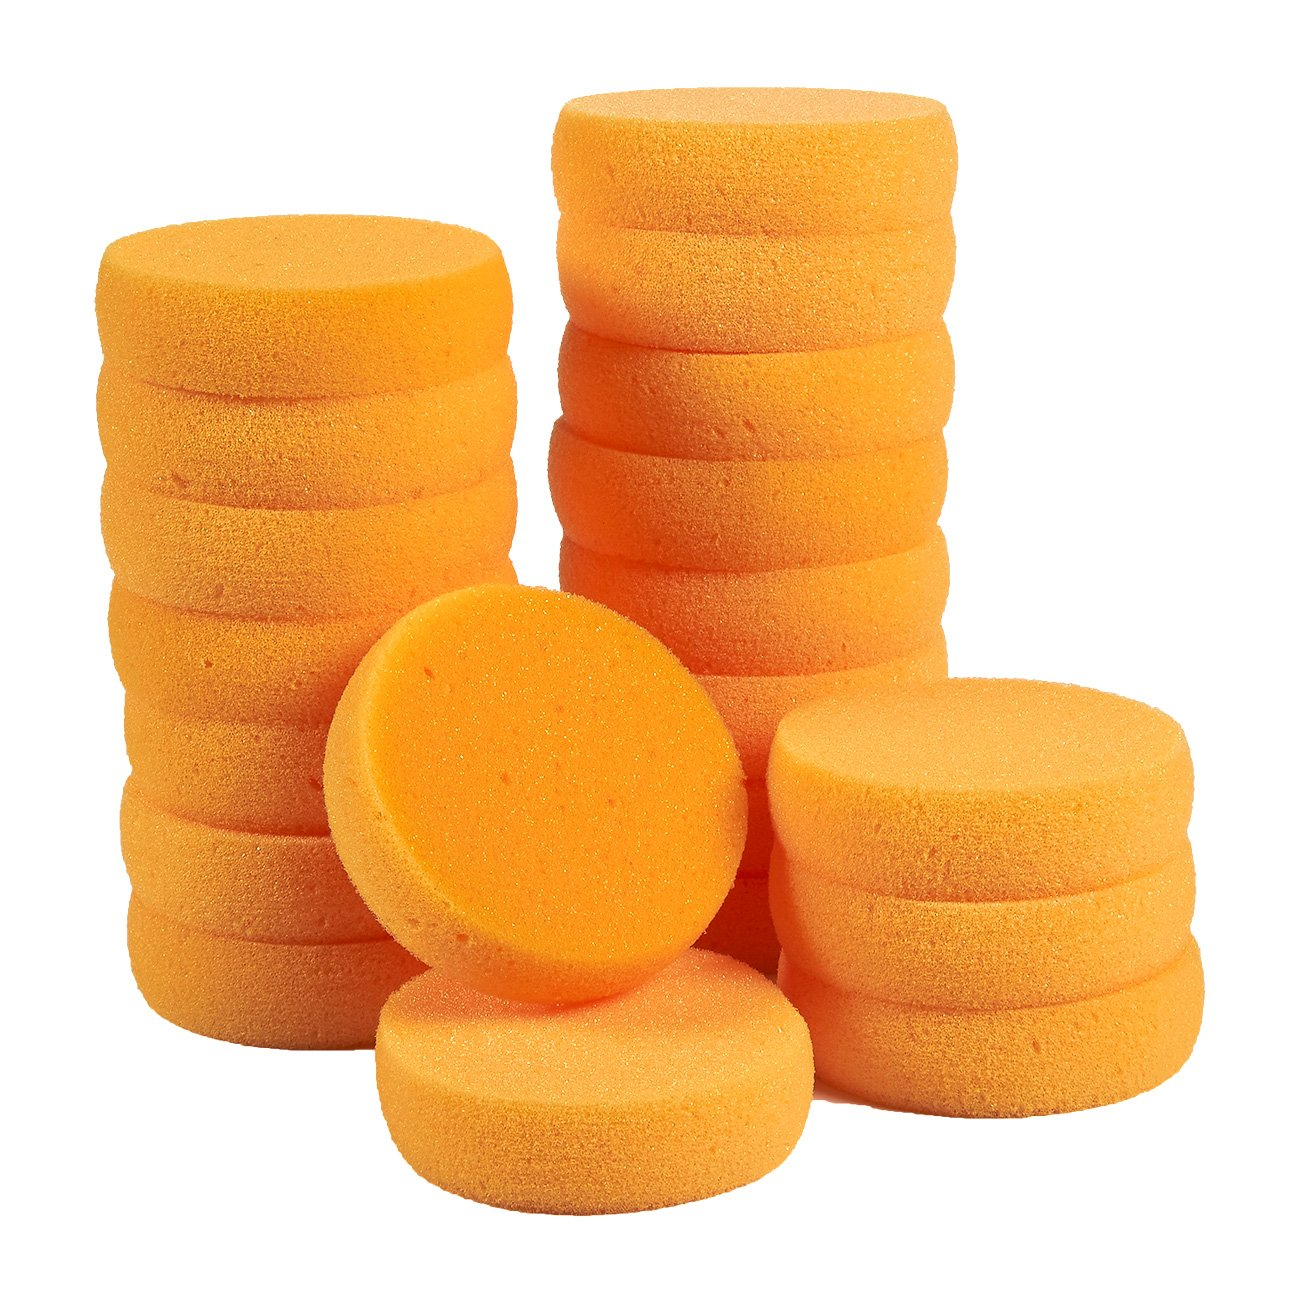 Pack of 20 Synthetic Sponges - Round Craft Sponges - Ideal for Painting, Face Painting, Crafts, Pottery, Clay, Household Use, 3.5 x 1 x 3.5 inches, Orange Juvale